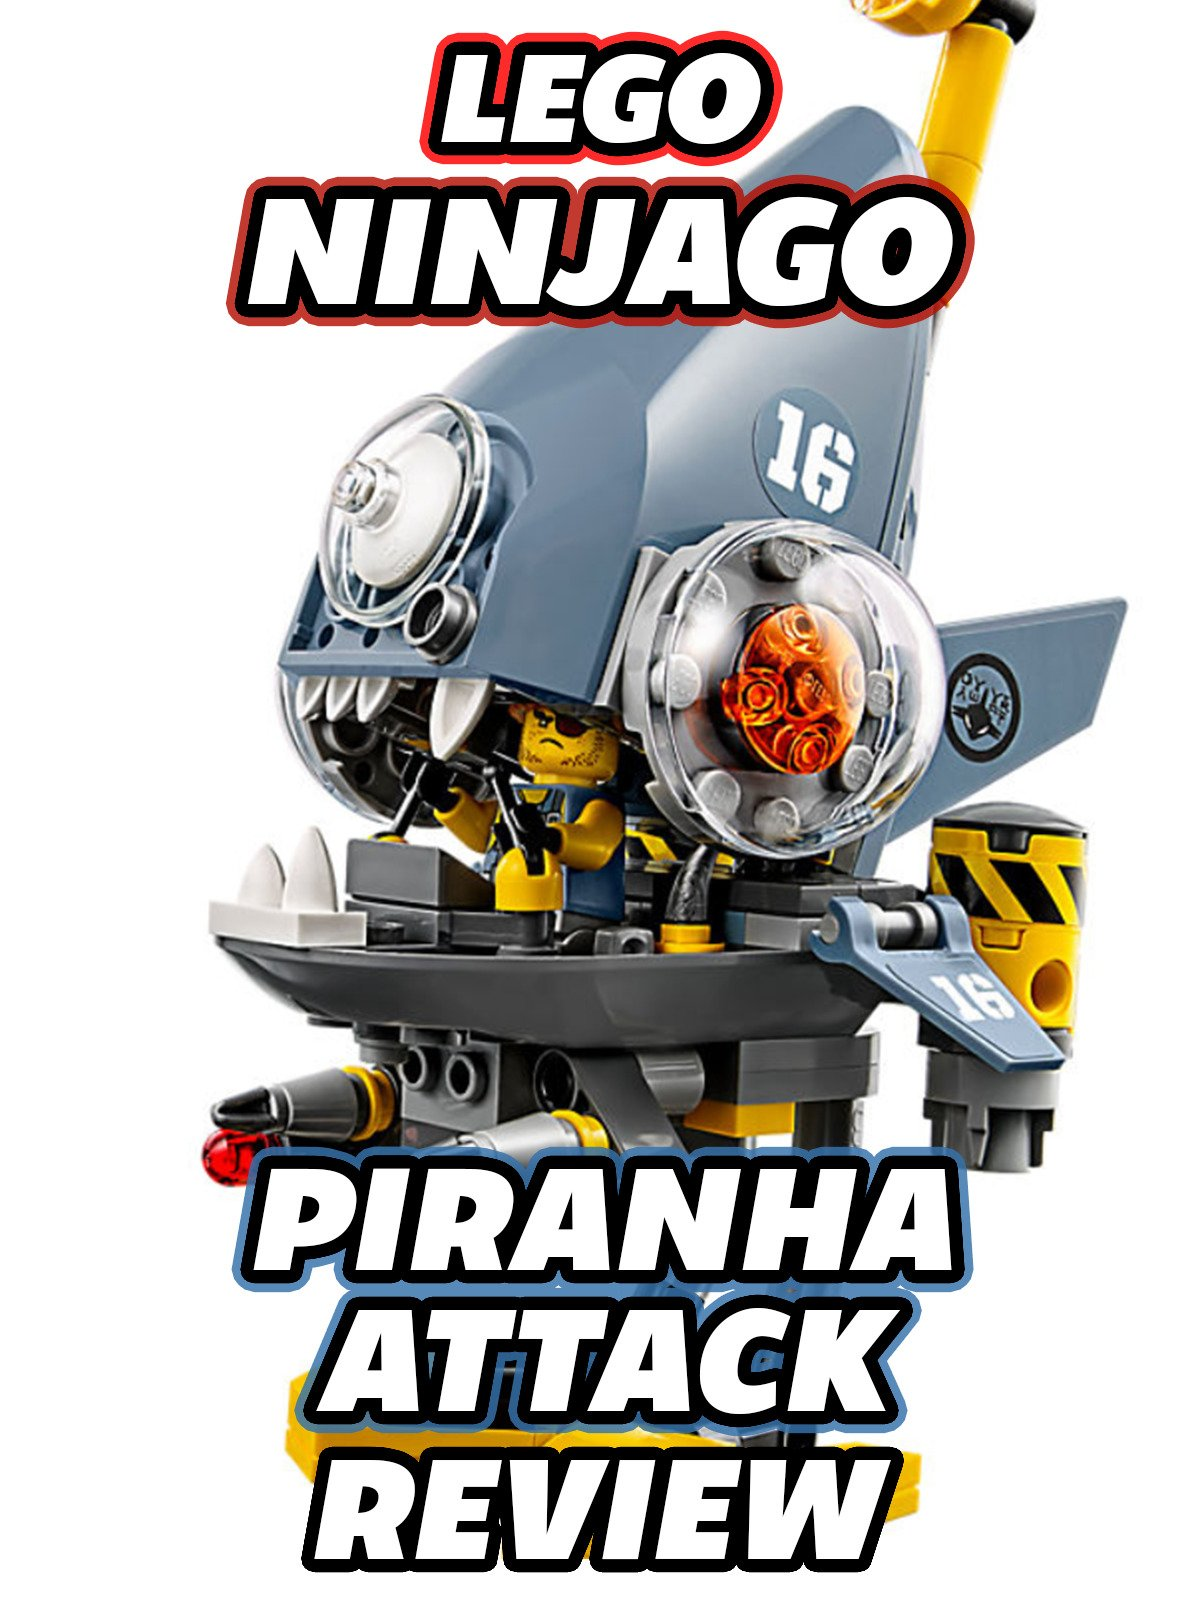 Clip: Lego Ninjago Piranha Attack Review